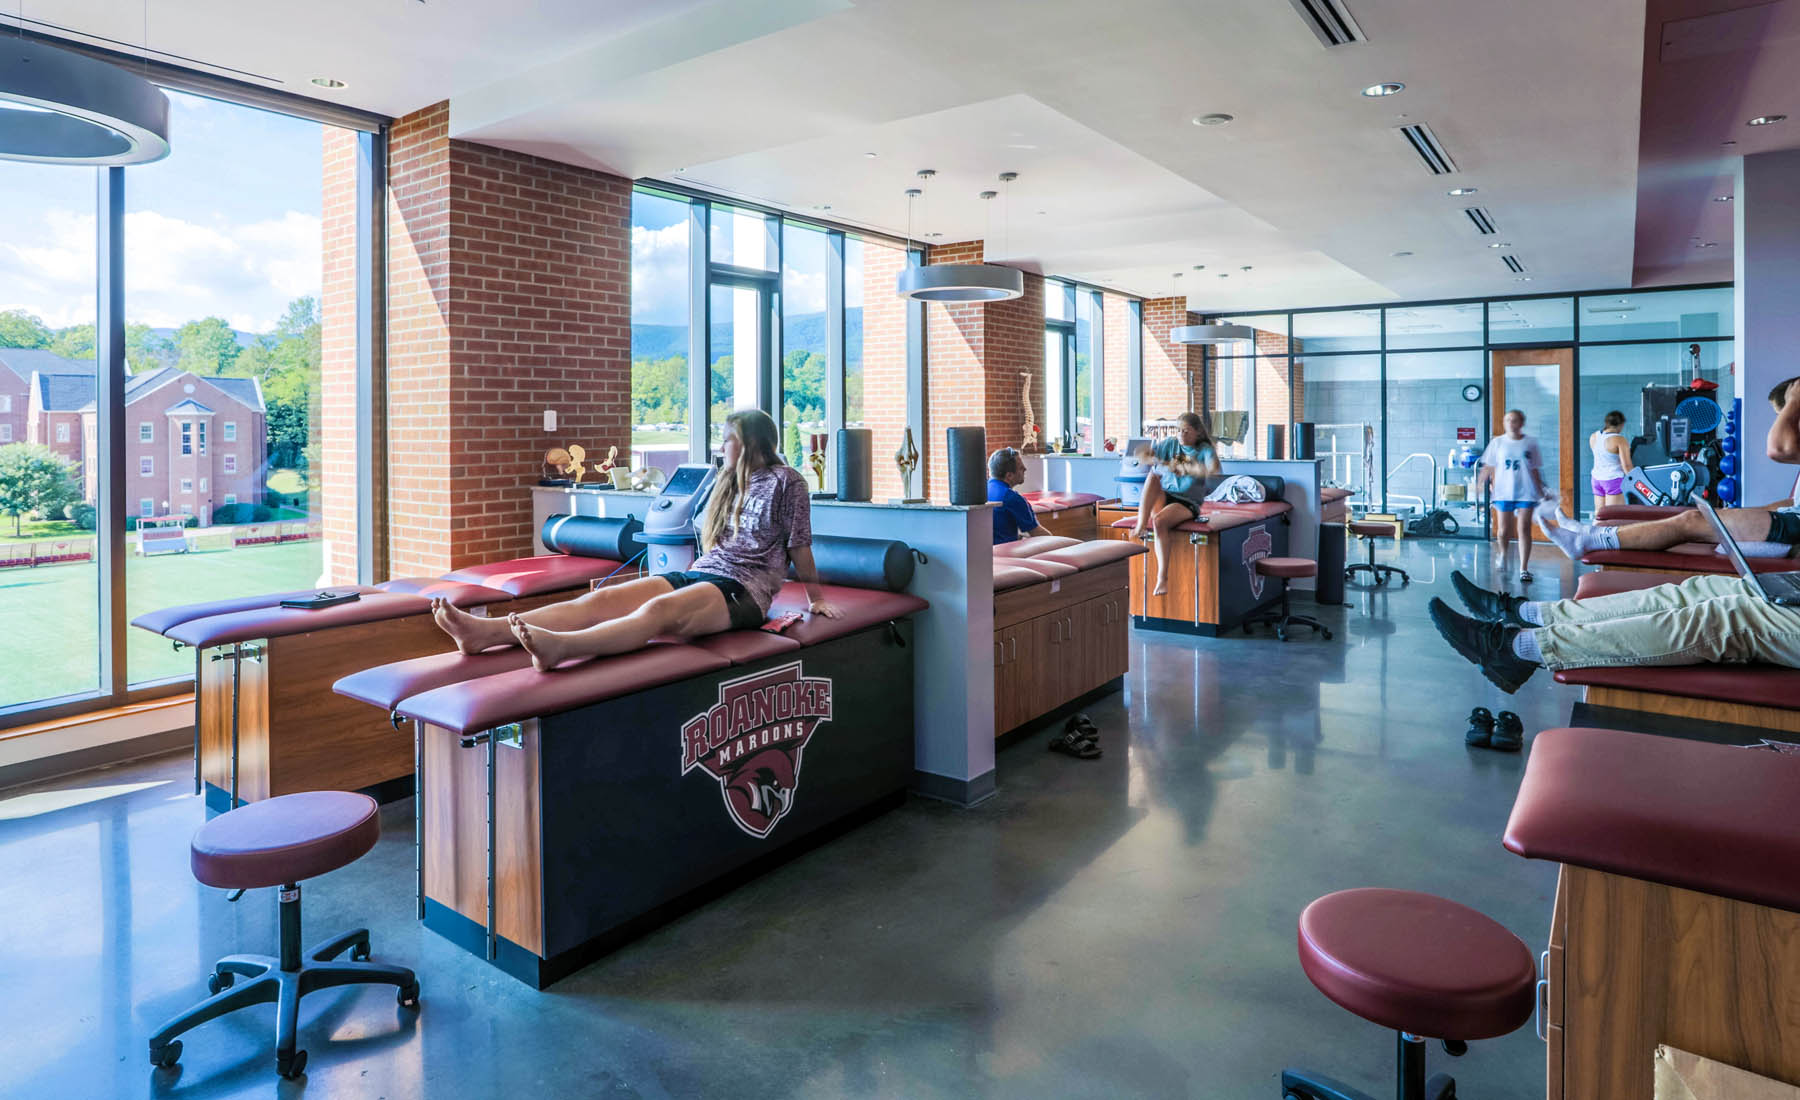 Integrated within the facility are faculty offices, classrooms, an athletic training clinic and lab space that support the popular Health and Human Performance (HHP) Department.